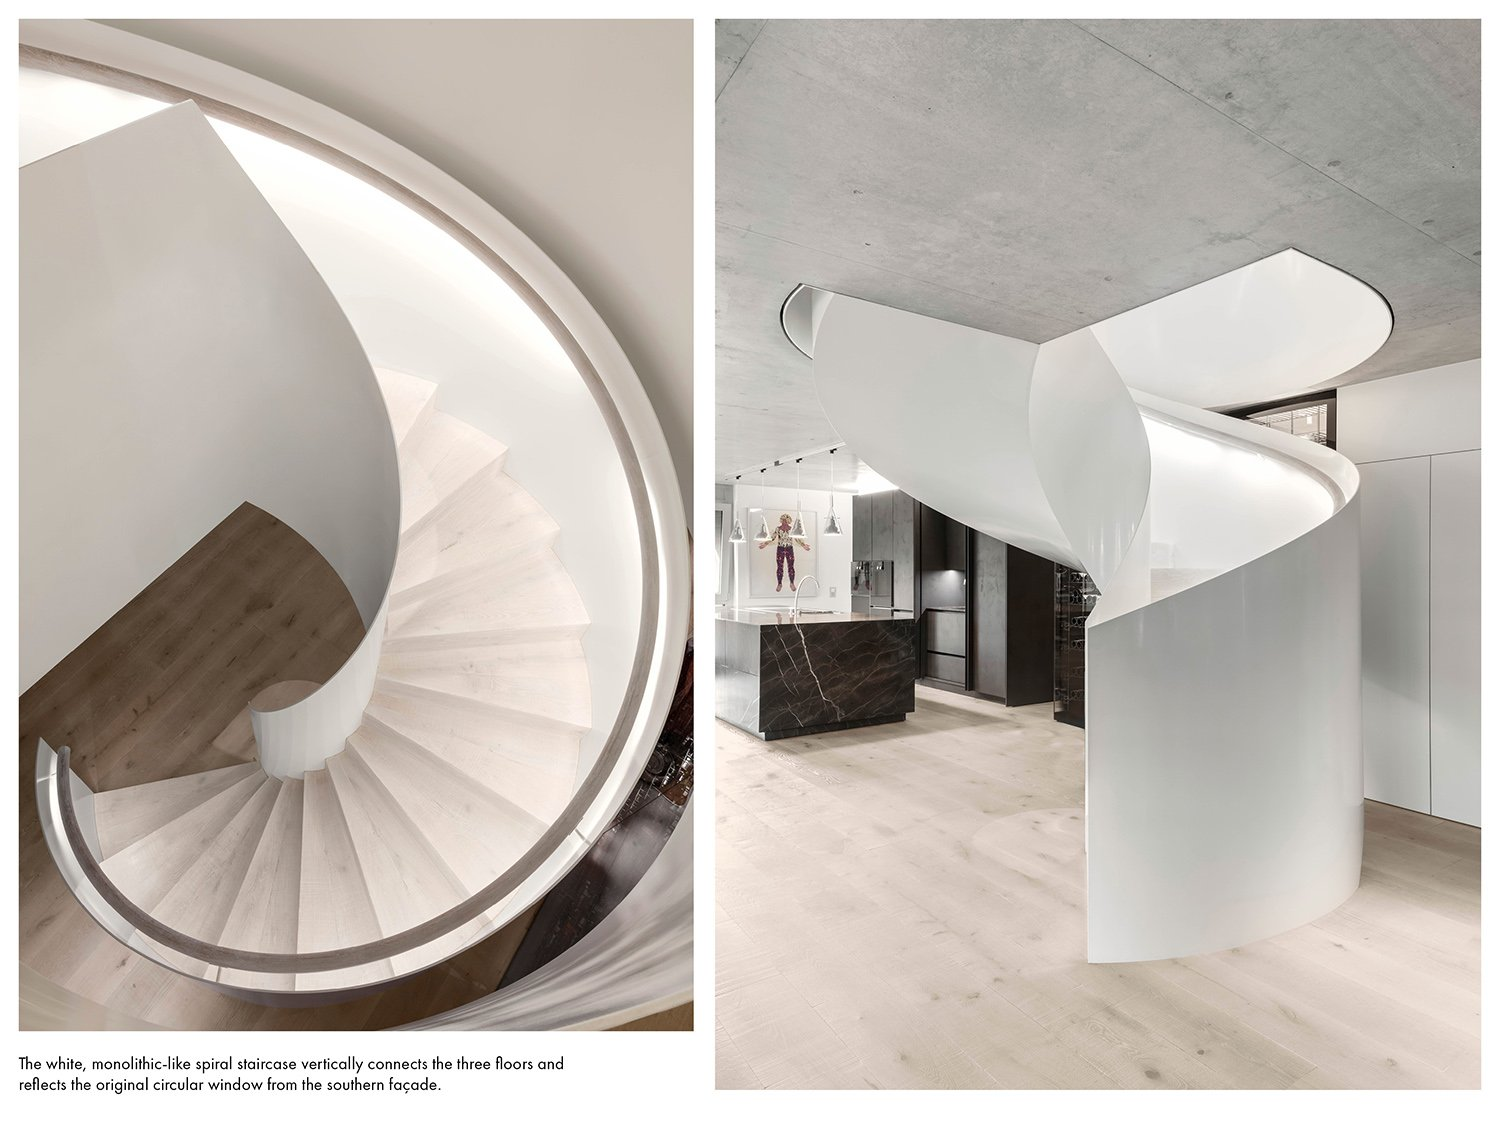 The spiral staircase reflects the original circular window from the southern façade. Delphine Burtin}